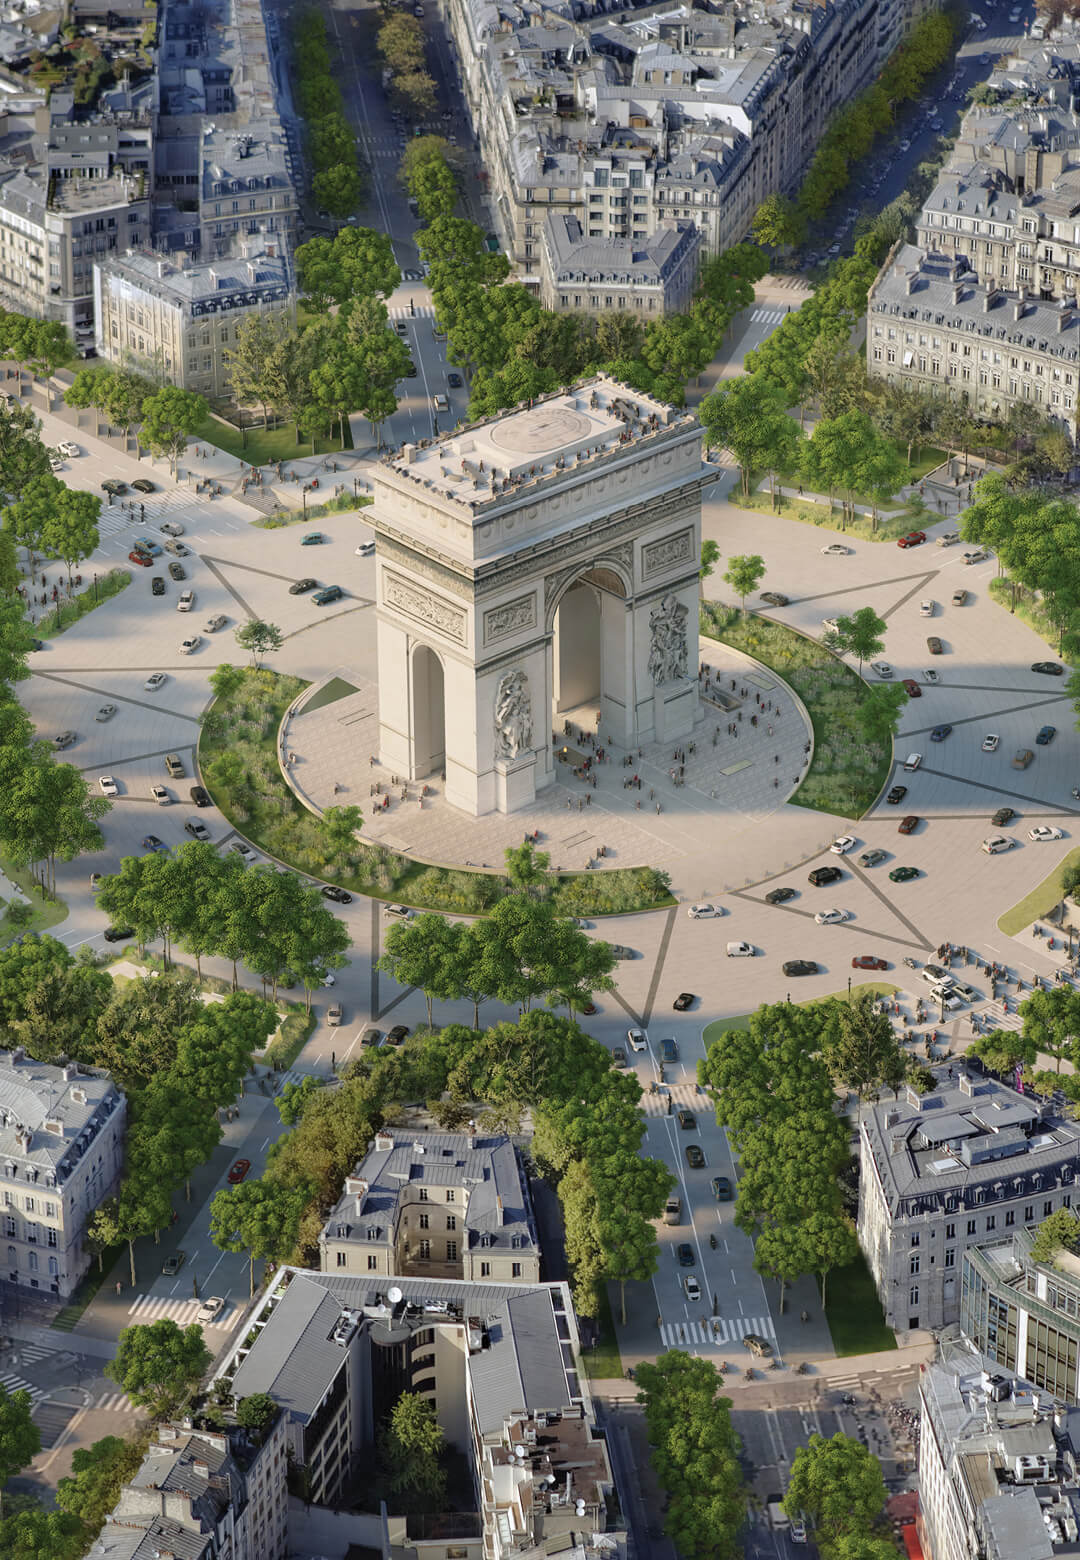 Anne Hidalgo, Mayor of Paris, announced that they would be going ahead with a transformative new scheme for the French capital's most famous avenue the Champs-Élysées | Champs-Élysées | Philippe Chiambaretta, PCA-STREAM | STIRworld